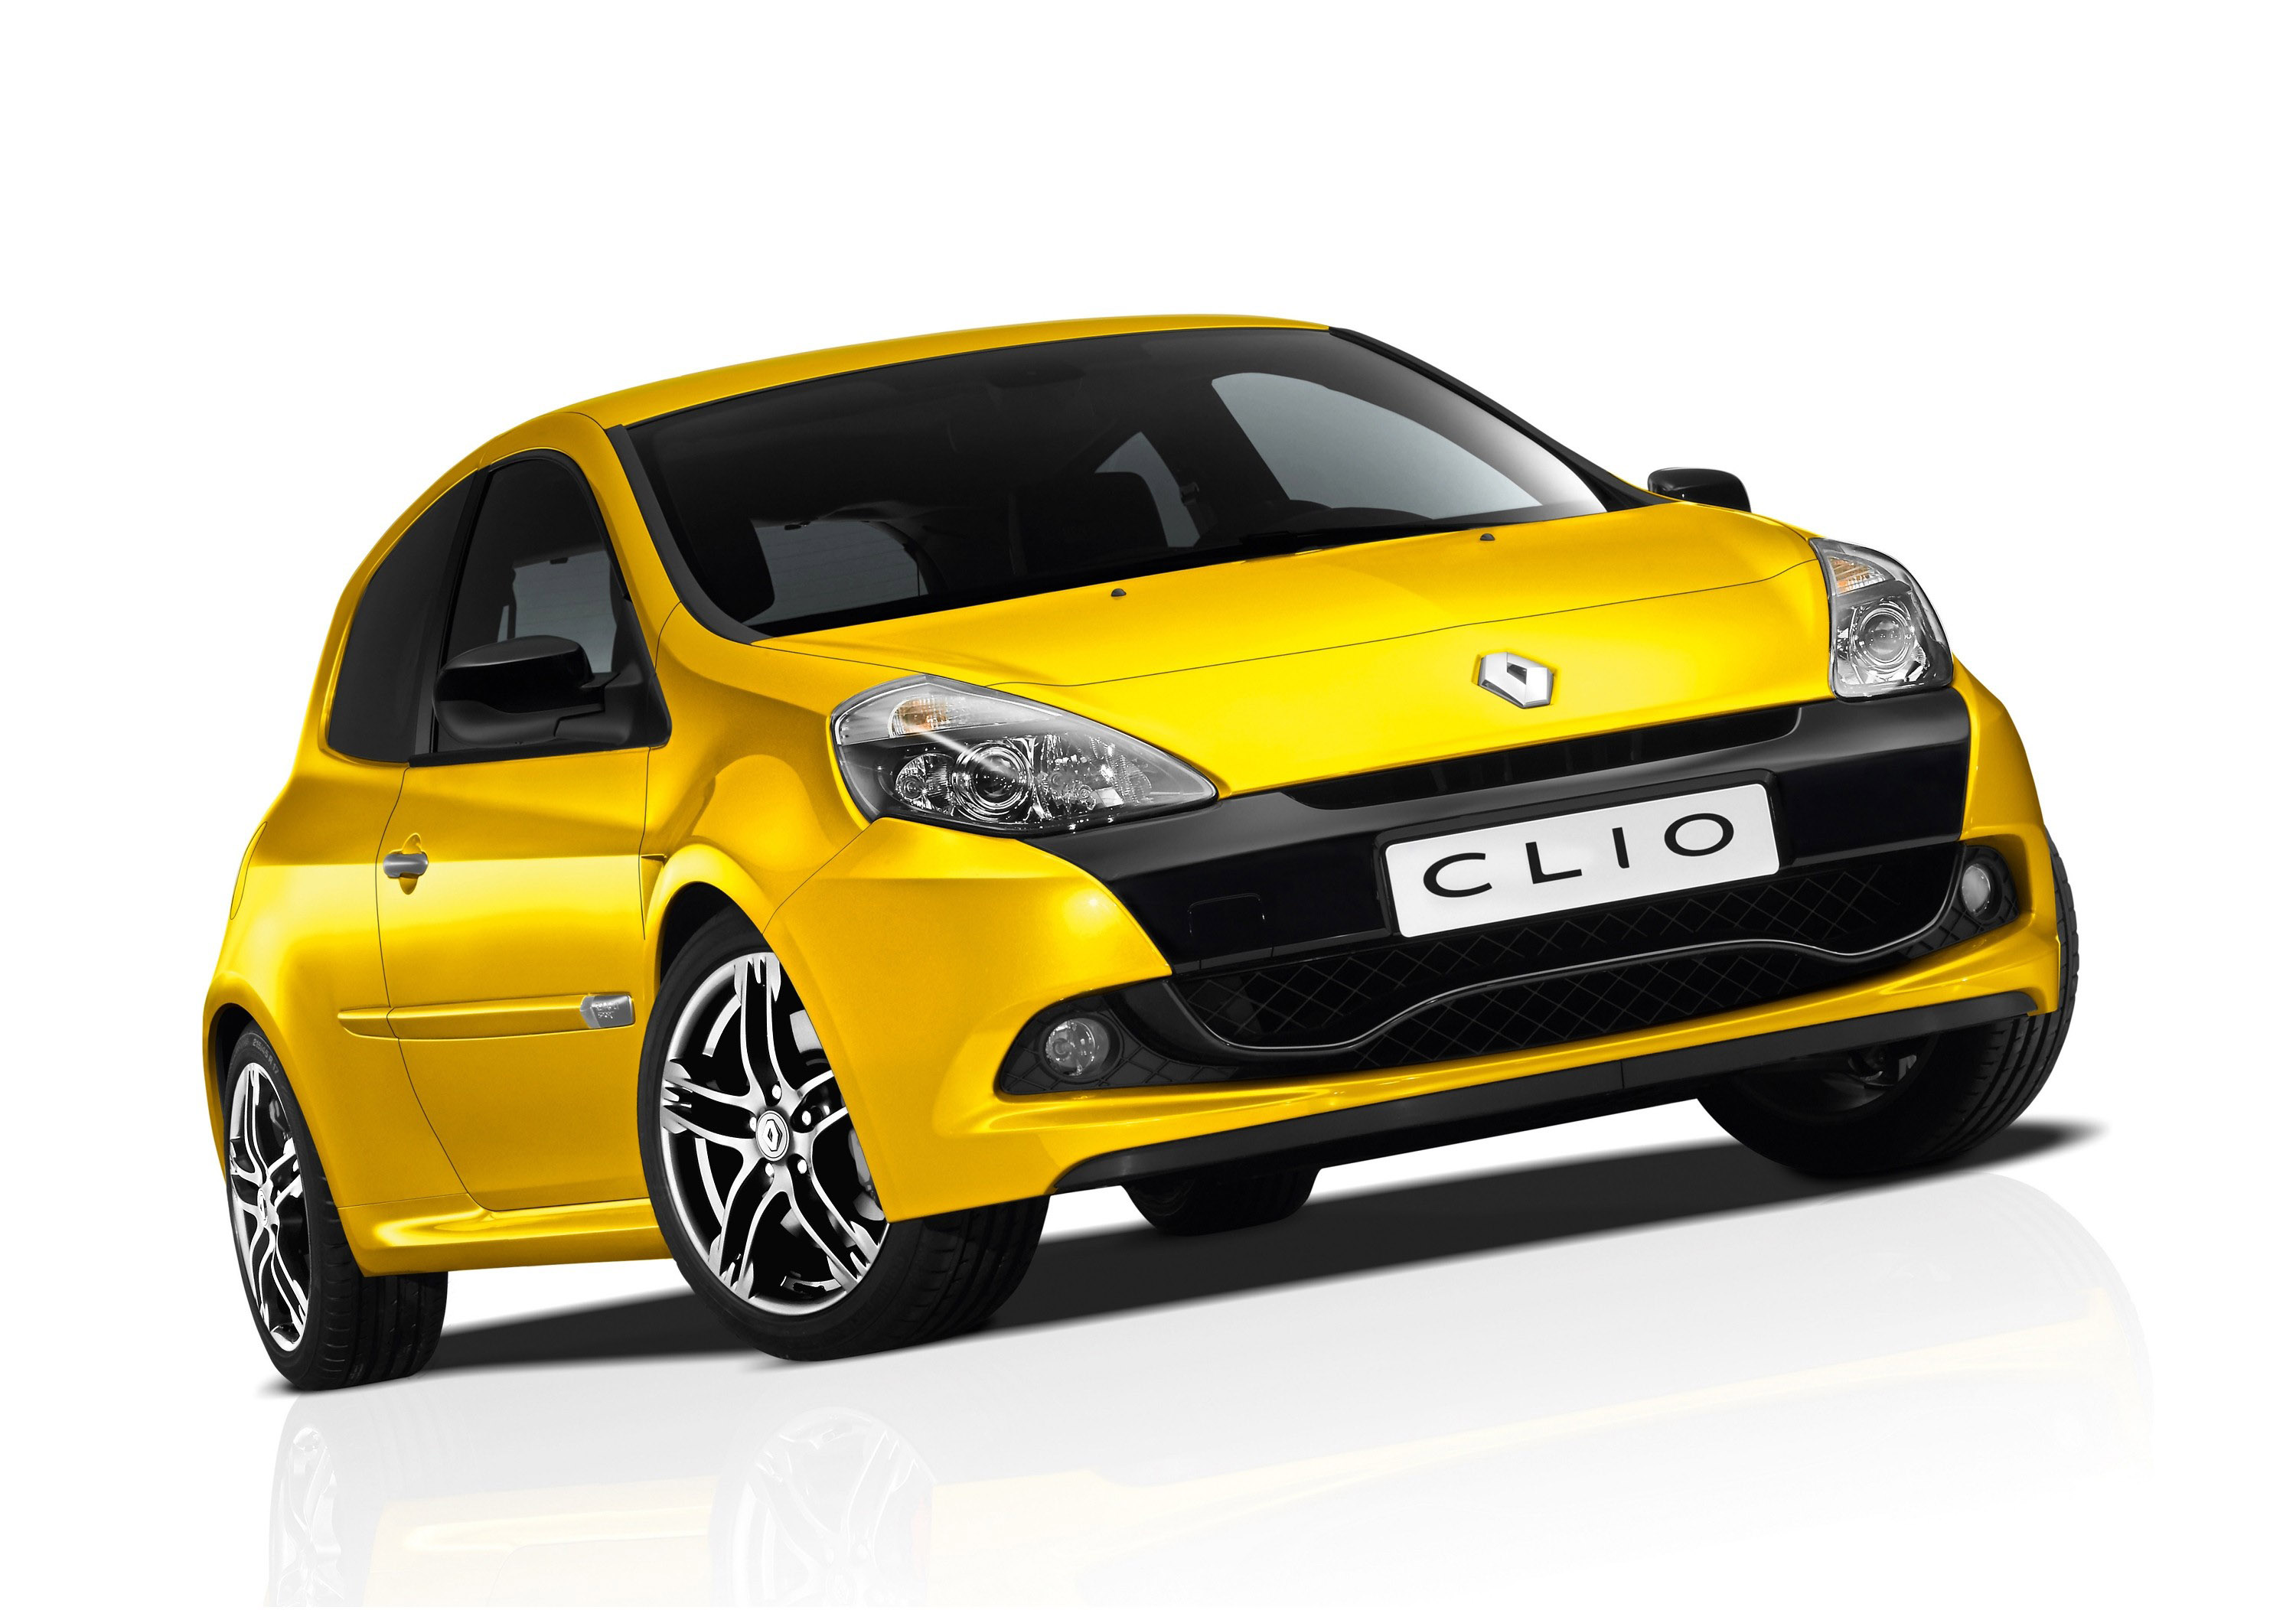 renault clio renaultsport 200. Black Bedroom Furniture Sets. Home Design Ideas